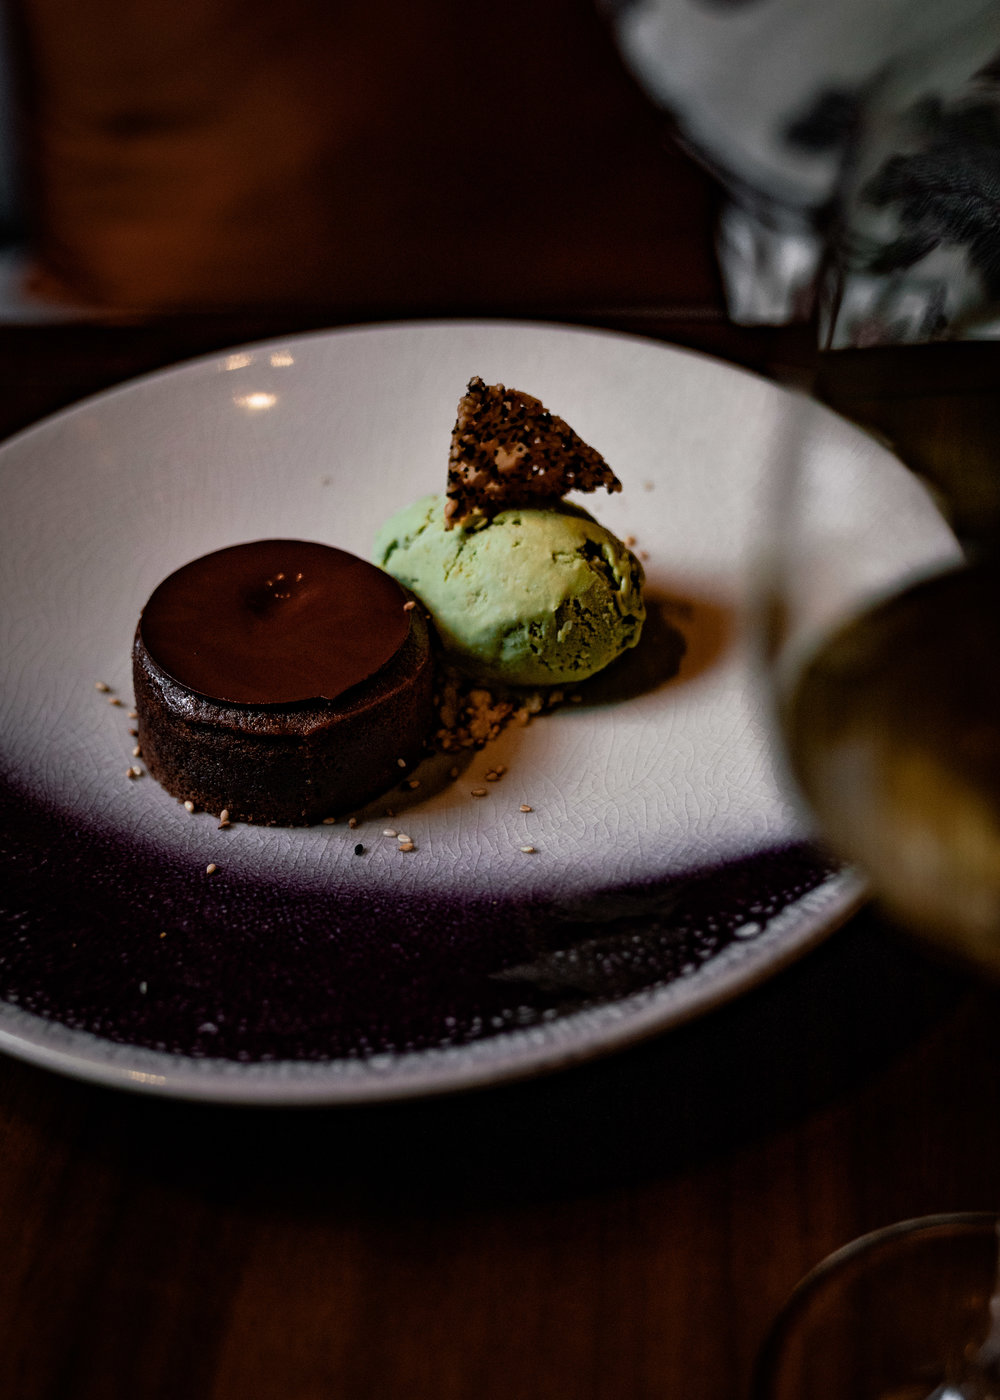 Chocolate moelleux with matcha ice cream